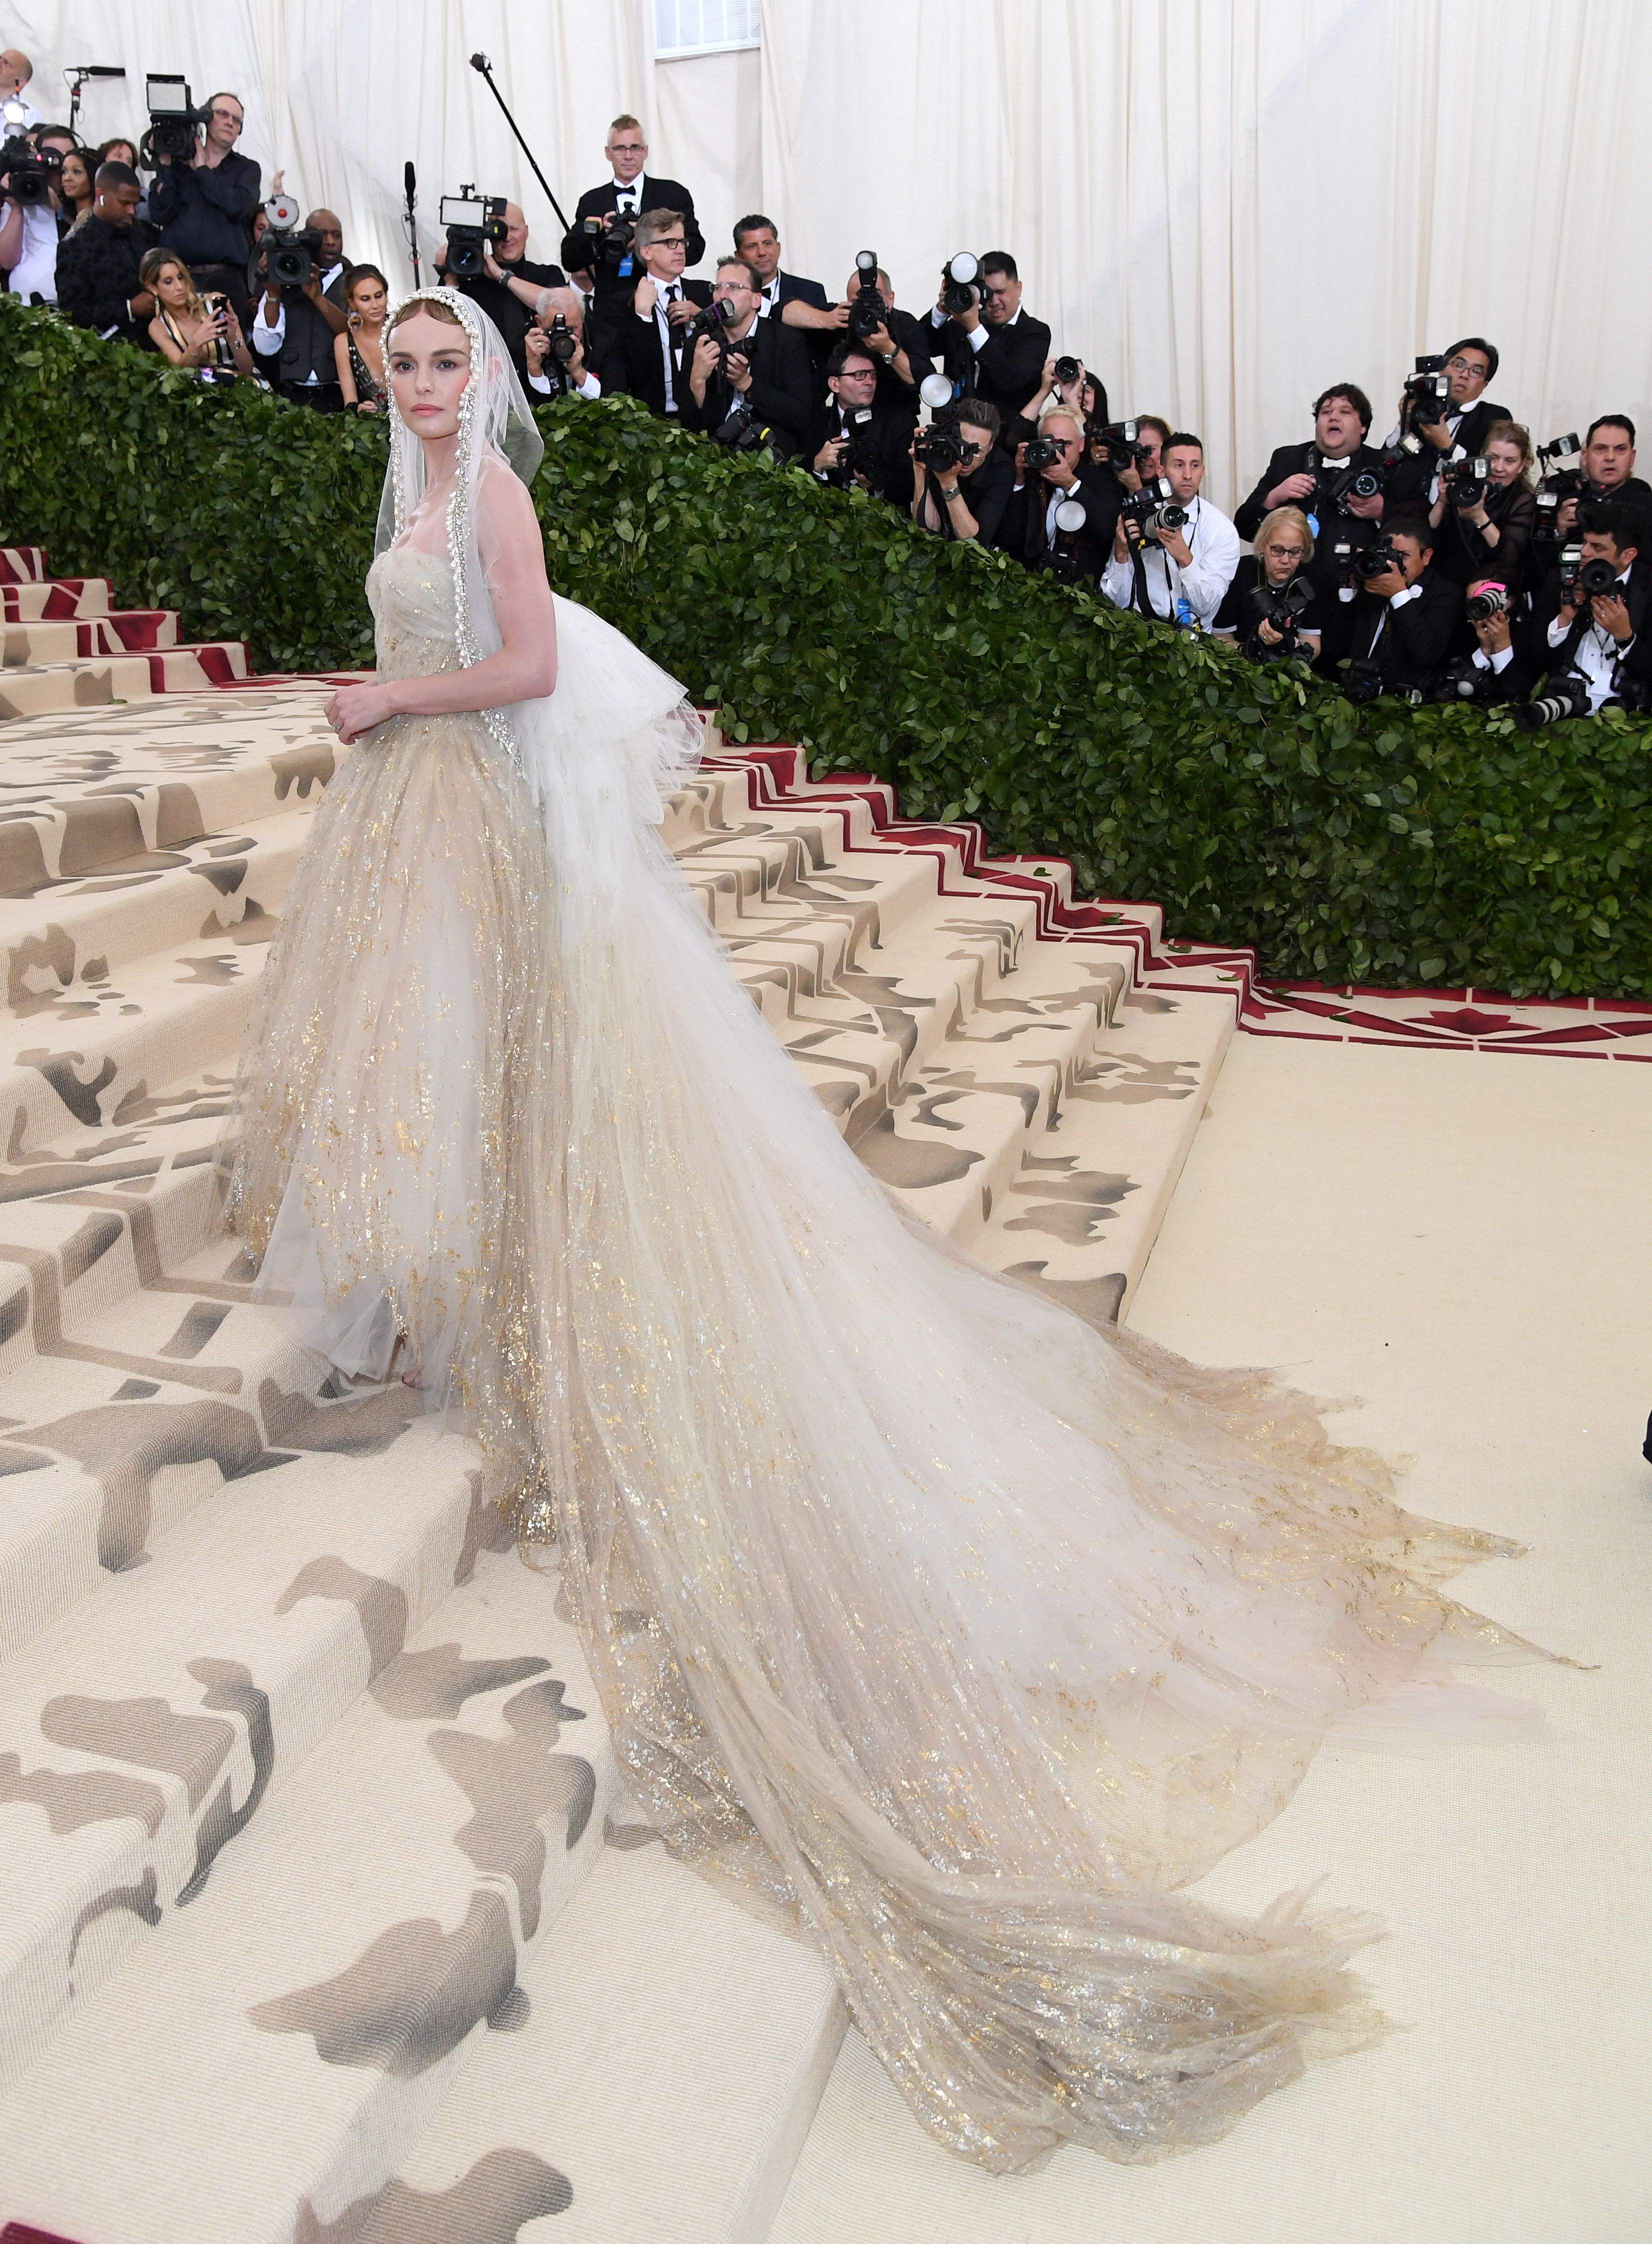 Bosworth was breathtaking in soft and romantic Oscar de la Renta at the 2018 Met Gala.